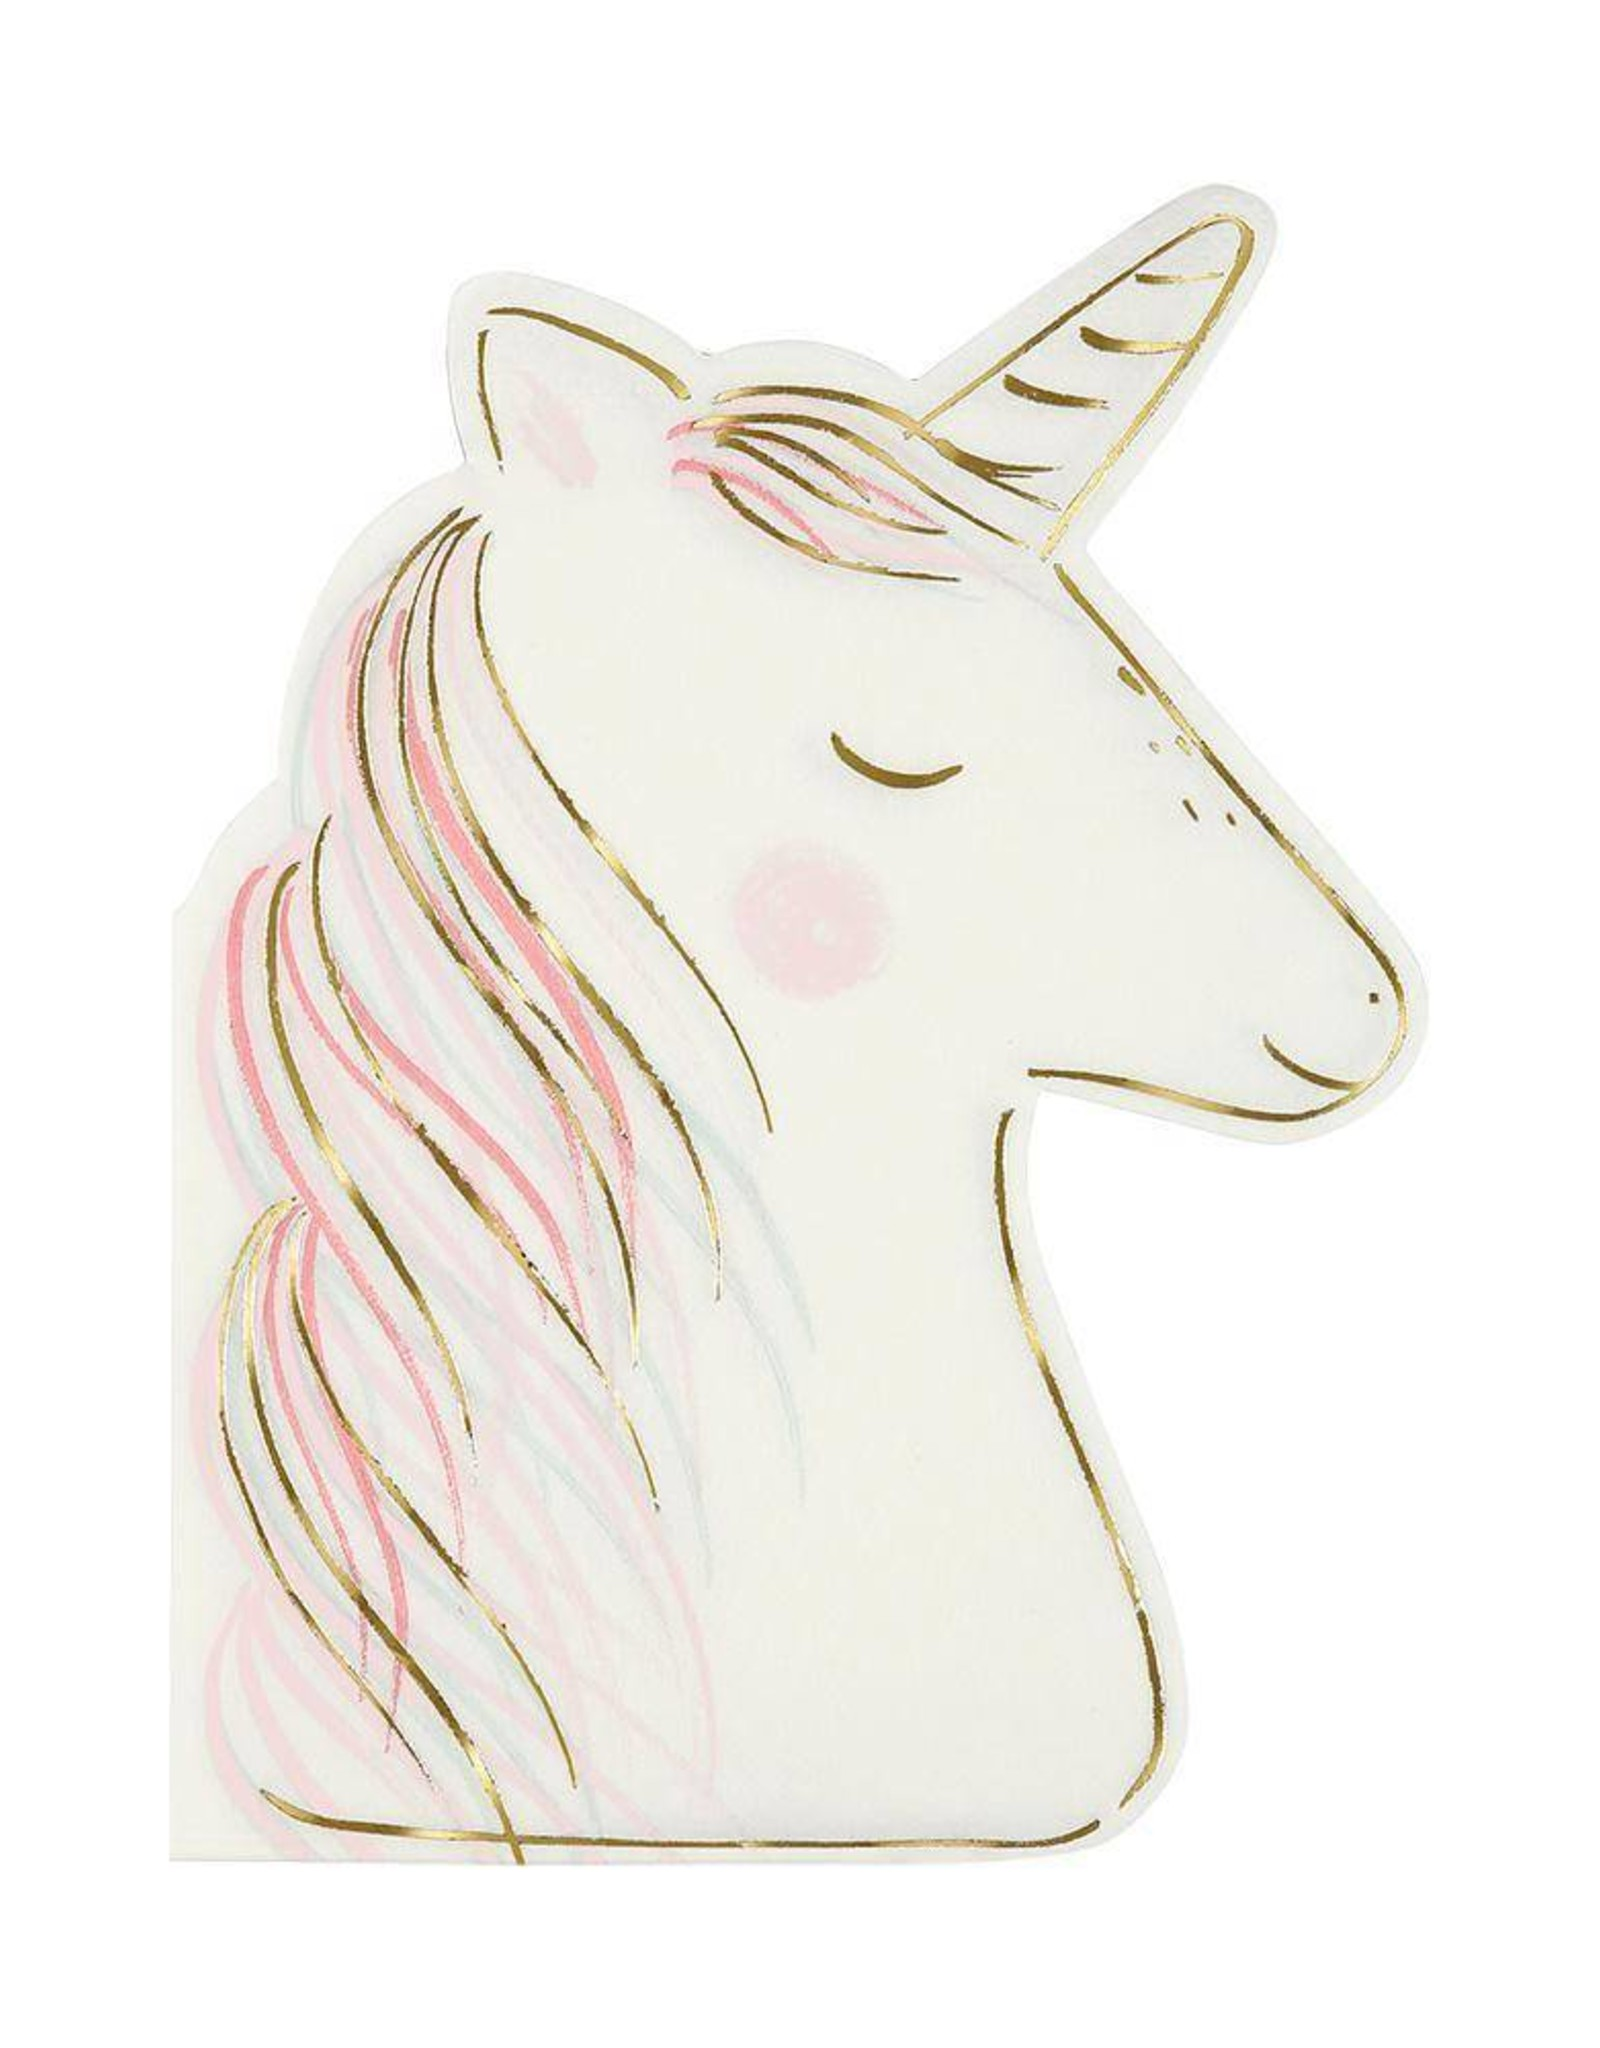 Meri Meri magical unicorn napkin